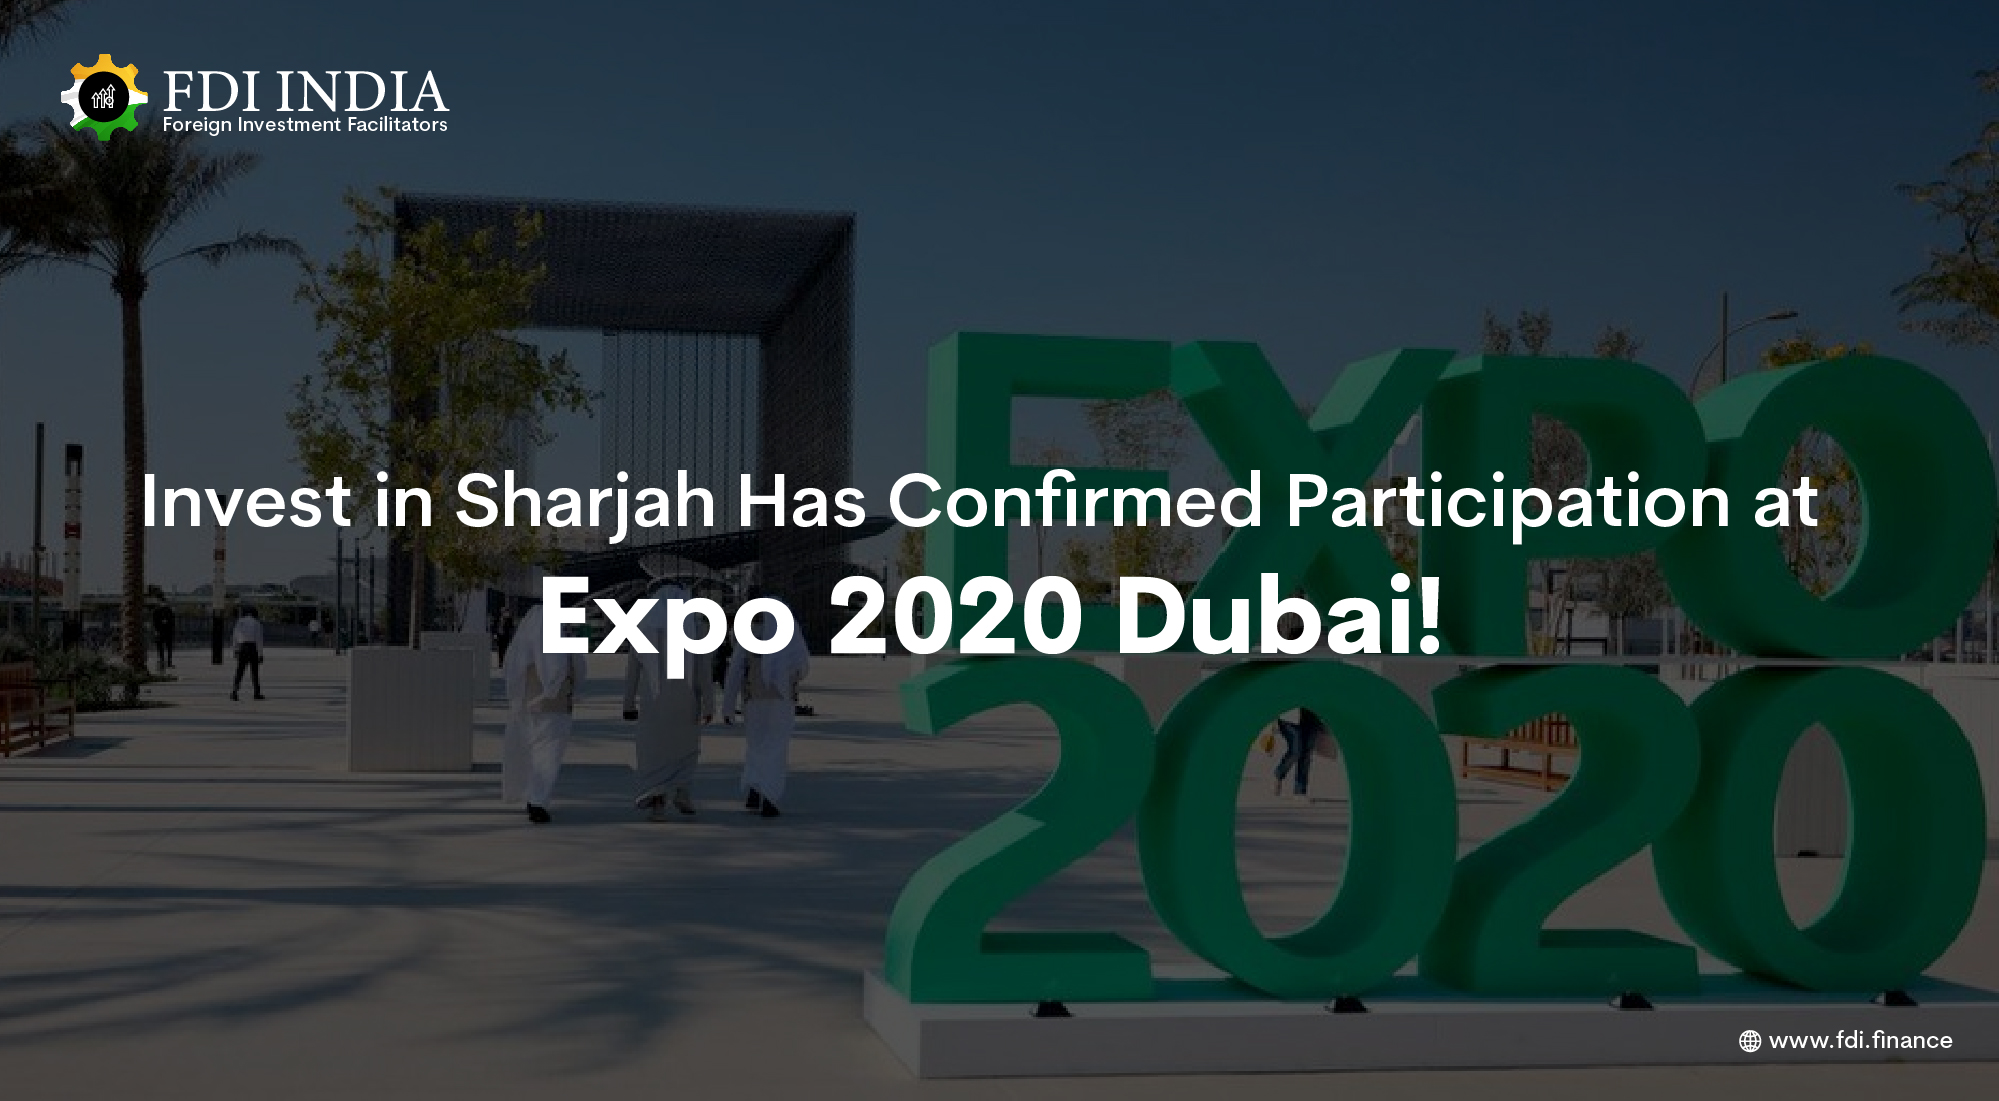 Invest in Sharjah Has Confirmed Participation at Expo 2020 Dubai!